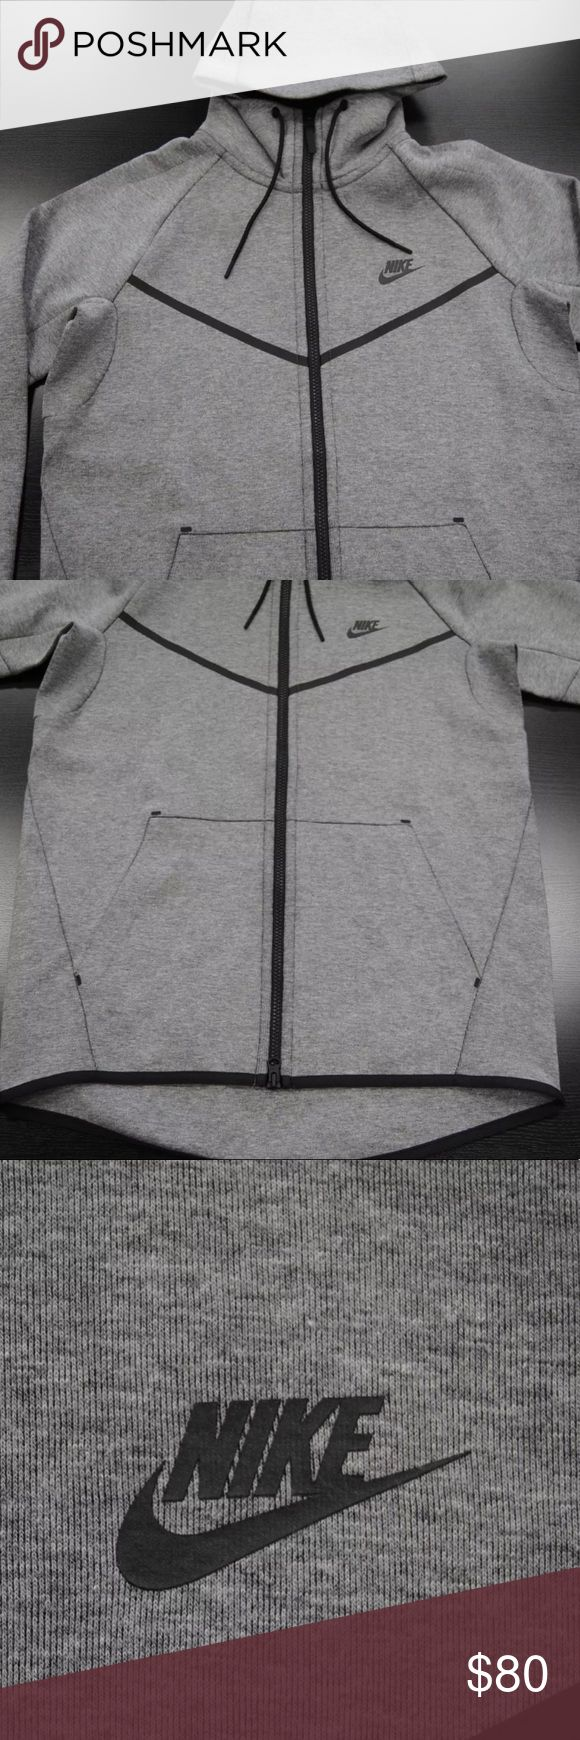 Nike Tech Fleece Windrunner Hoodie Carbon Black 100% Authentic 🔹 We are a very negotiable service 🔹 We provide overnight shipping and express shipping 🔹 Our transactions are made through third party applications 🔹 If you are interested in buying this product please contact us @ 201-496-0366 🔹 Nike Sweaters Zip Up